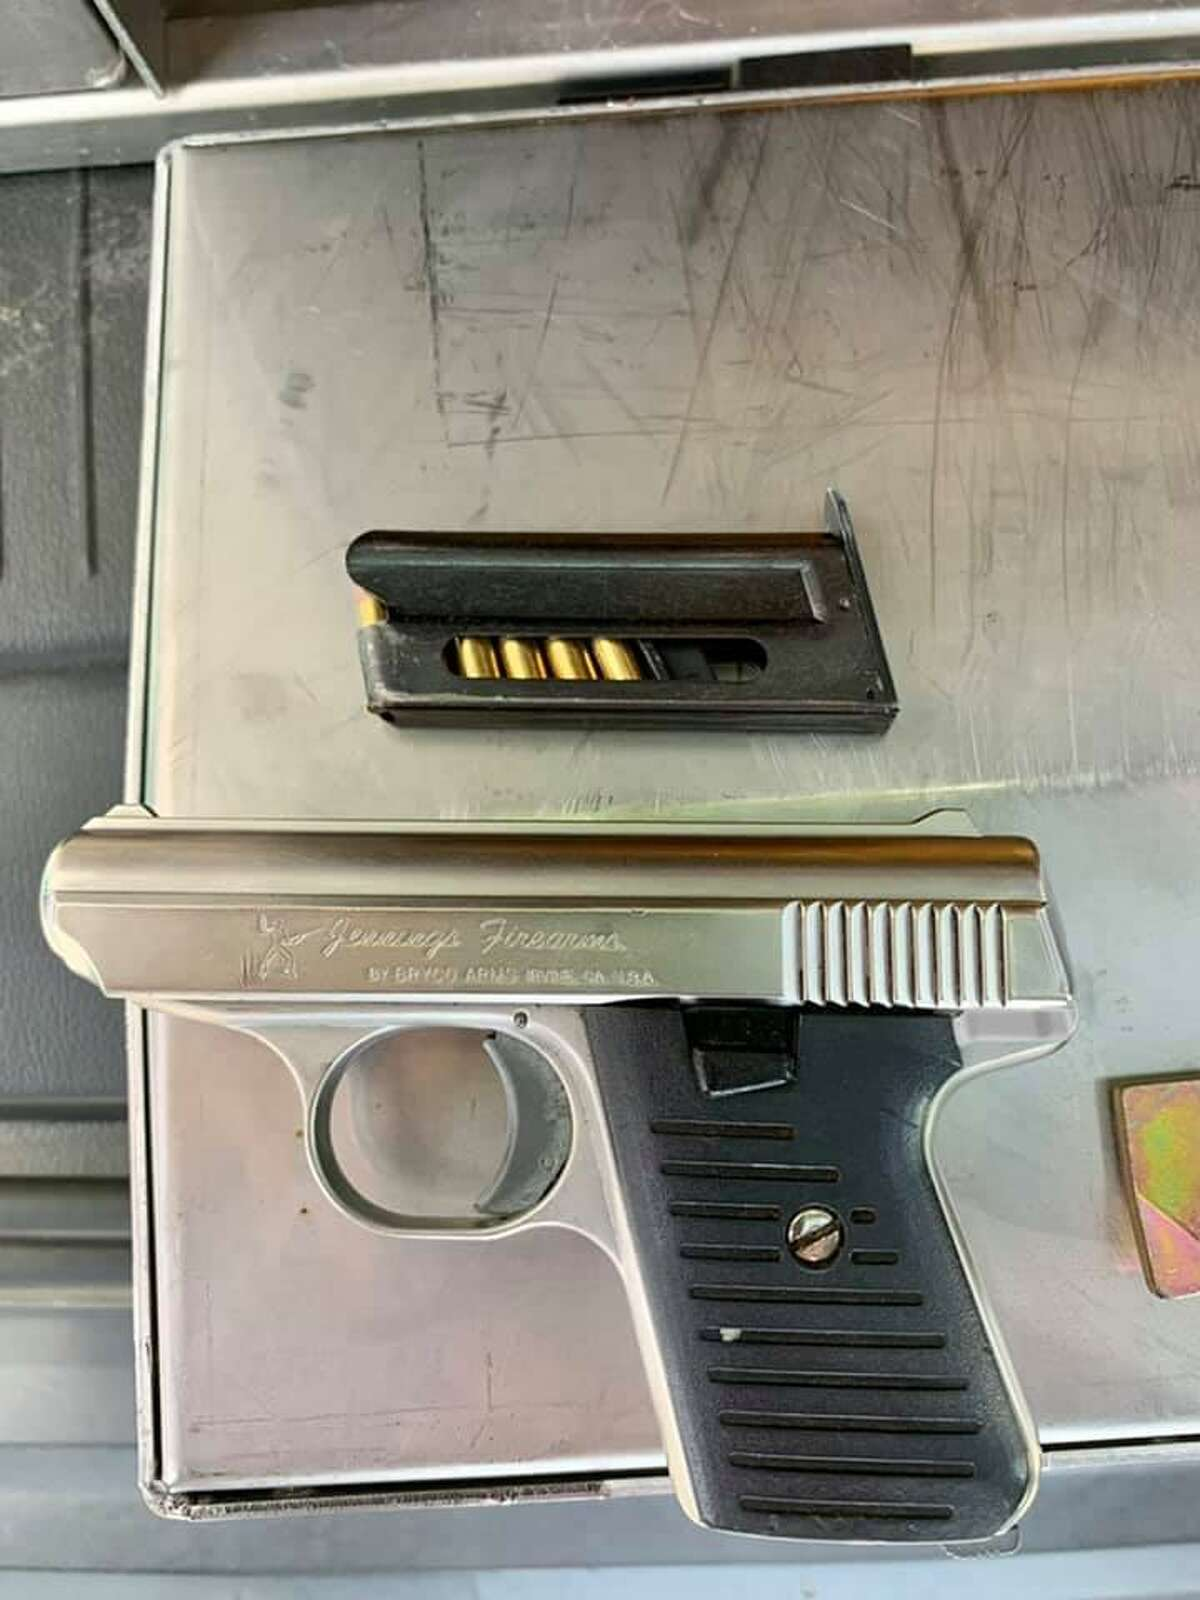 The Texas Department of Public Safety said they seized this gun during a traffic stop where two suspected human smugglers were arrested.